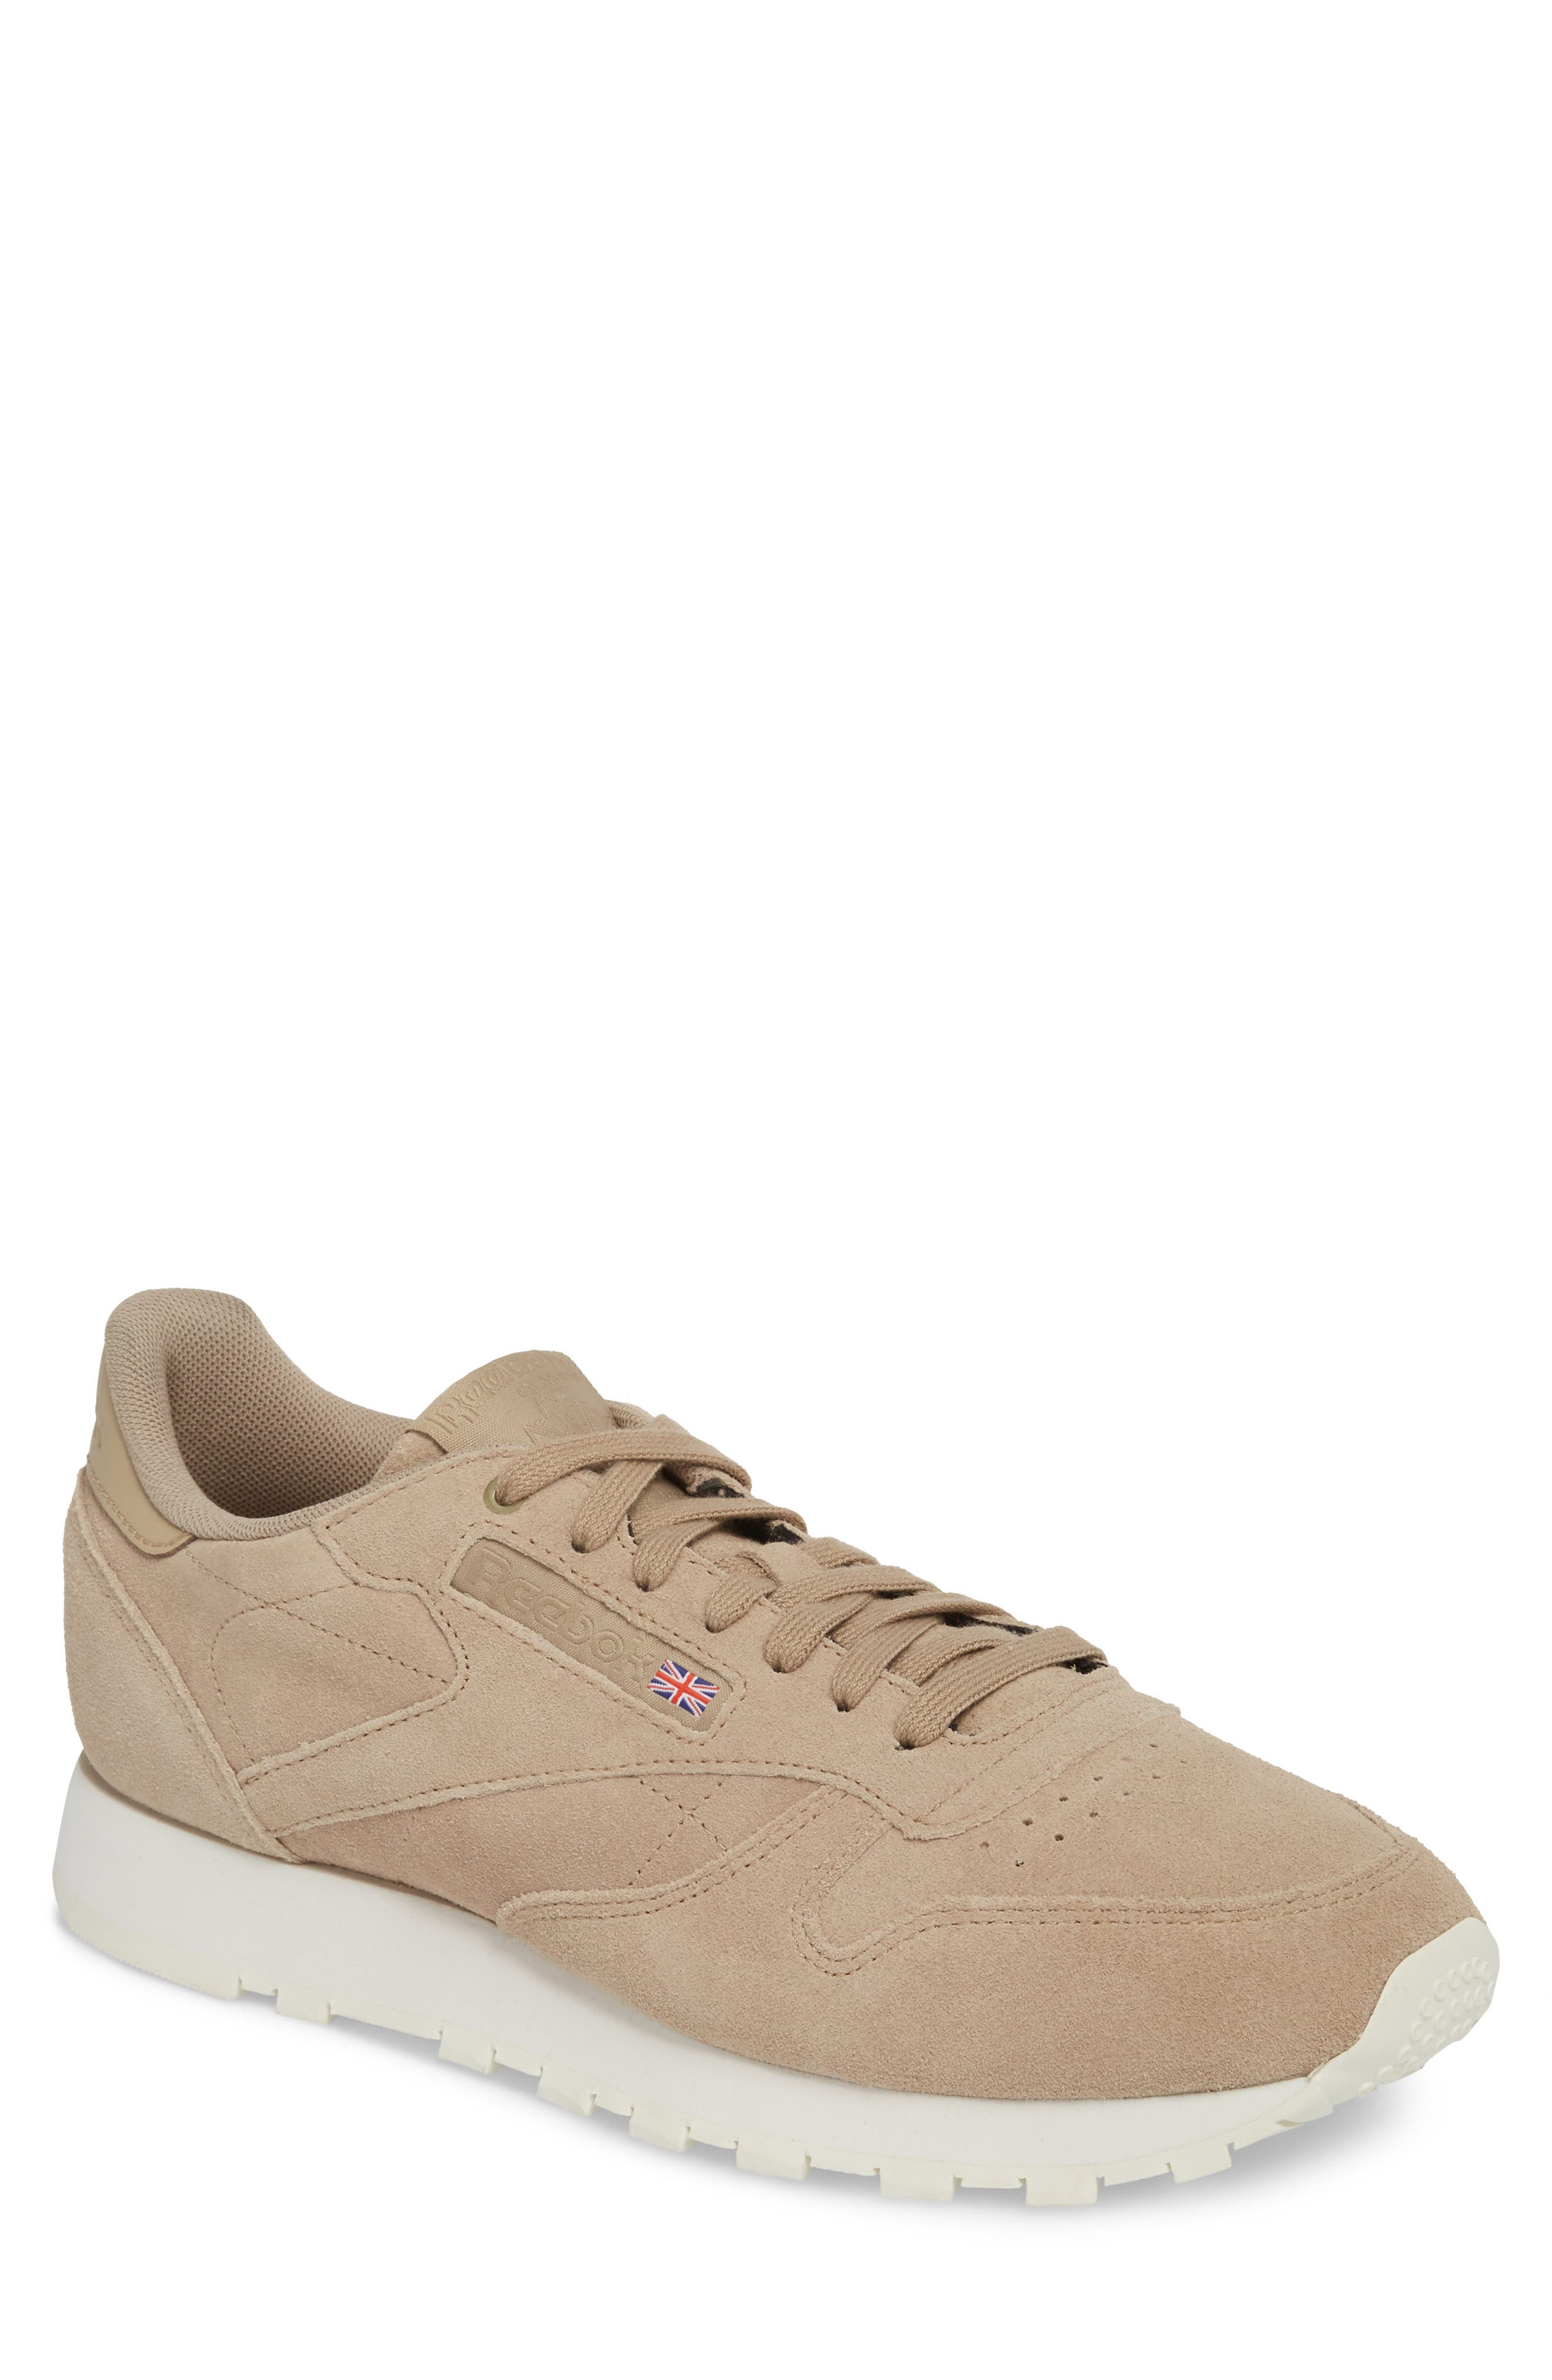 Reebok Classic Leather Low Top Sneaker (Men)